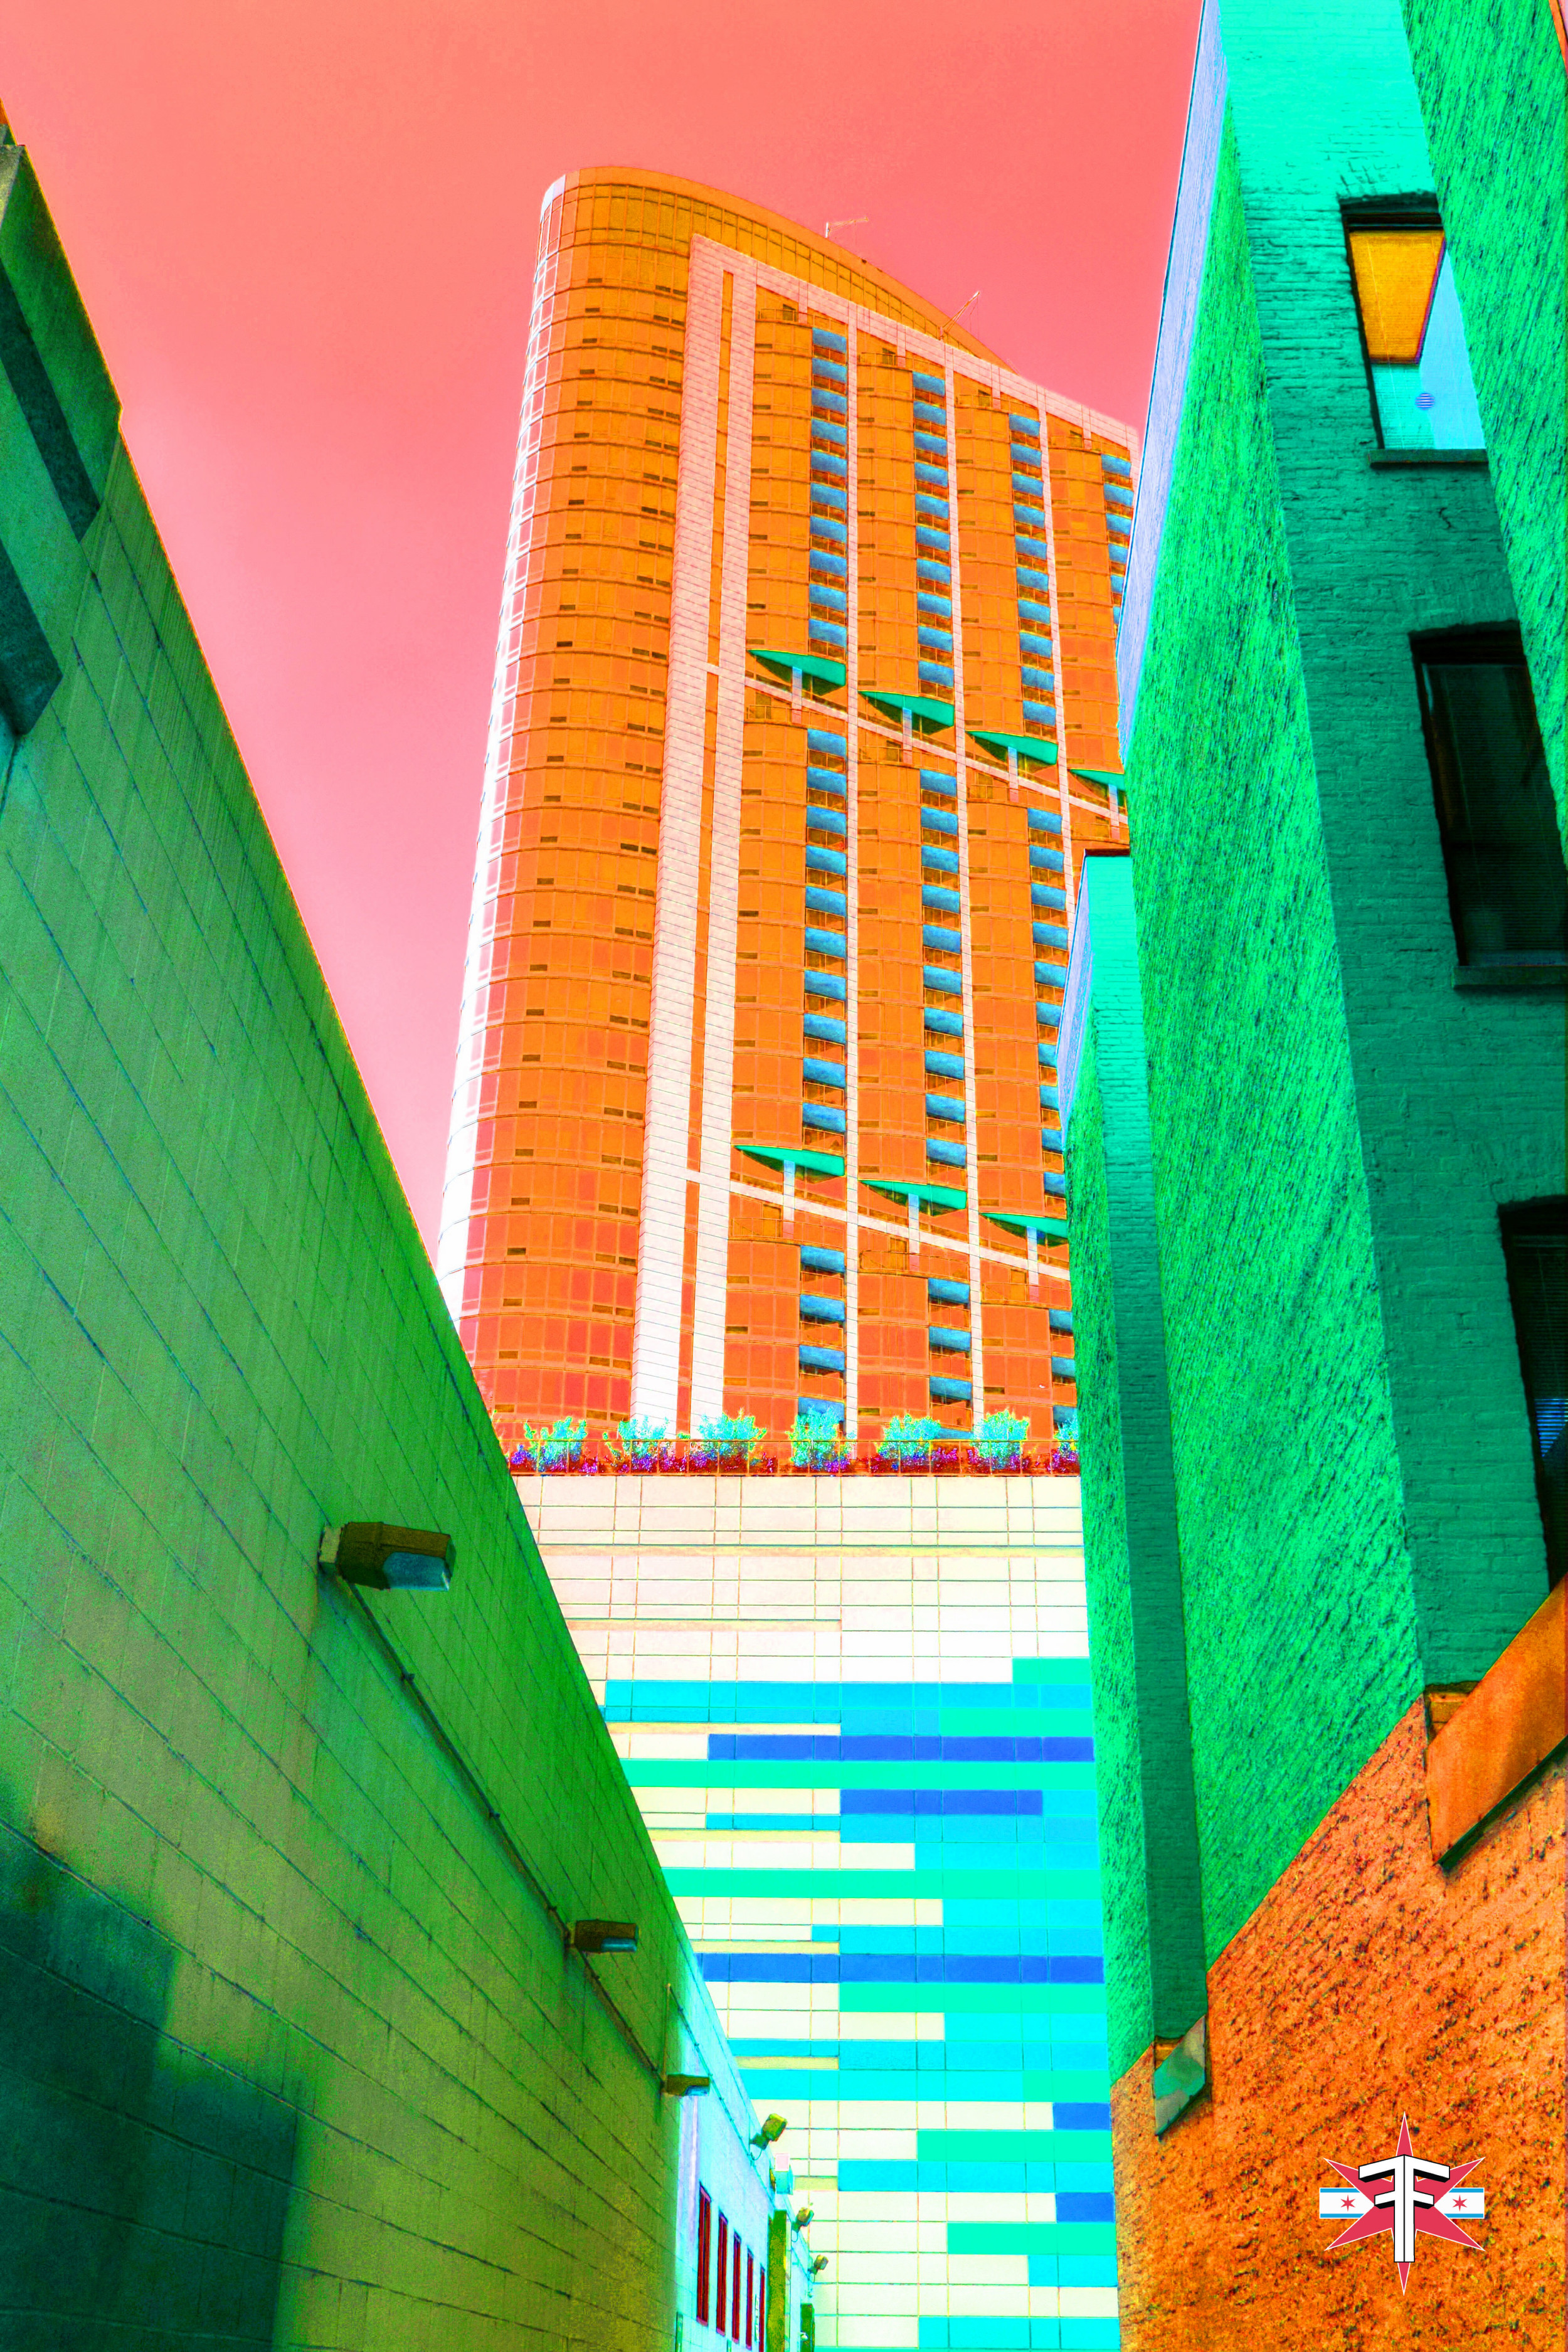 chicago art abstract eric formato photography color travel cityscape architecture saturated citycapes bright vibrant artistic-61-2.jpg